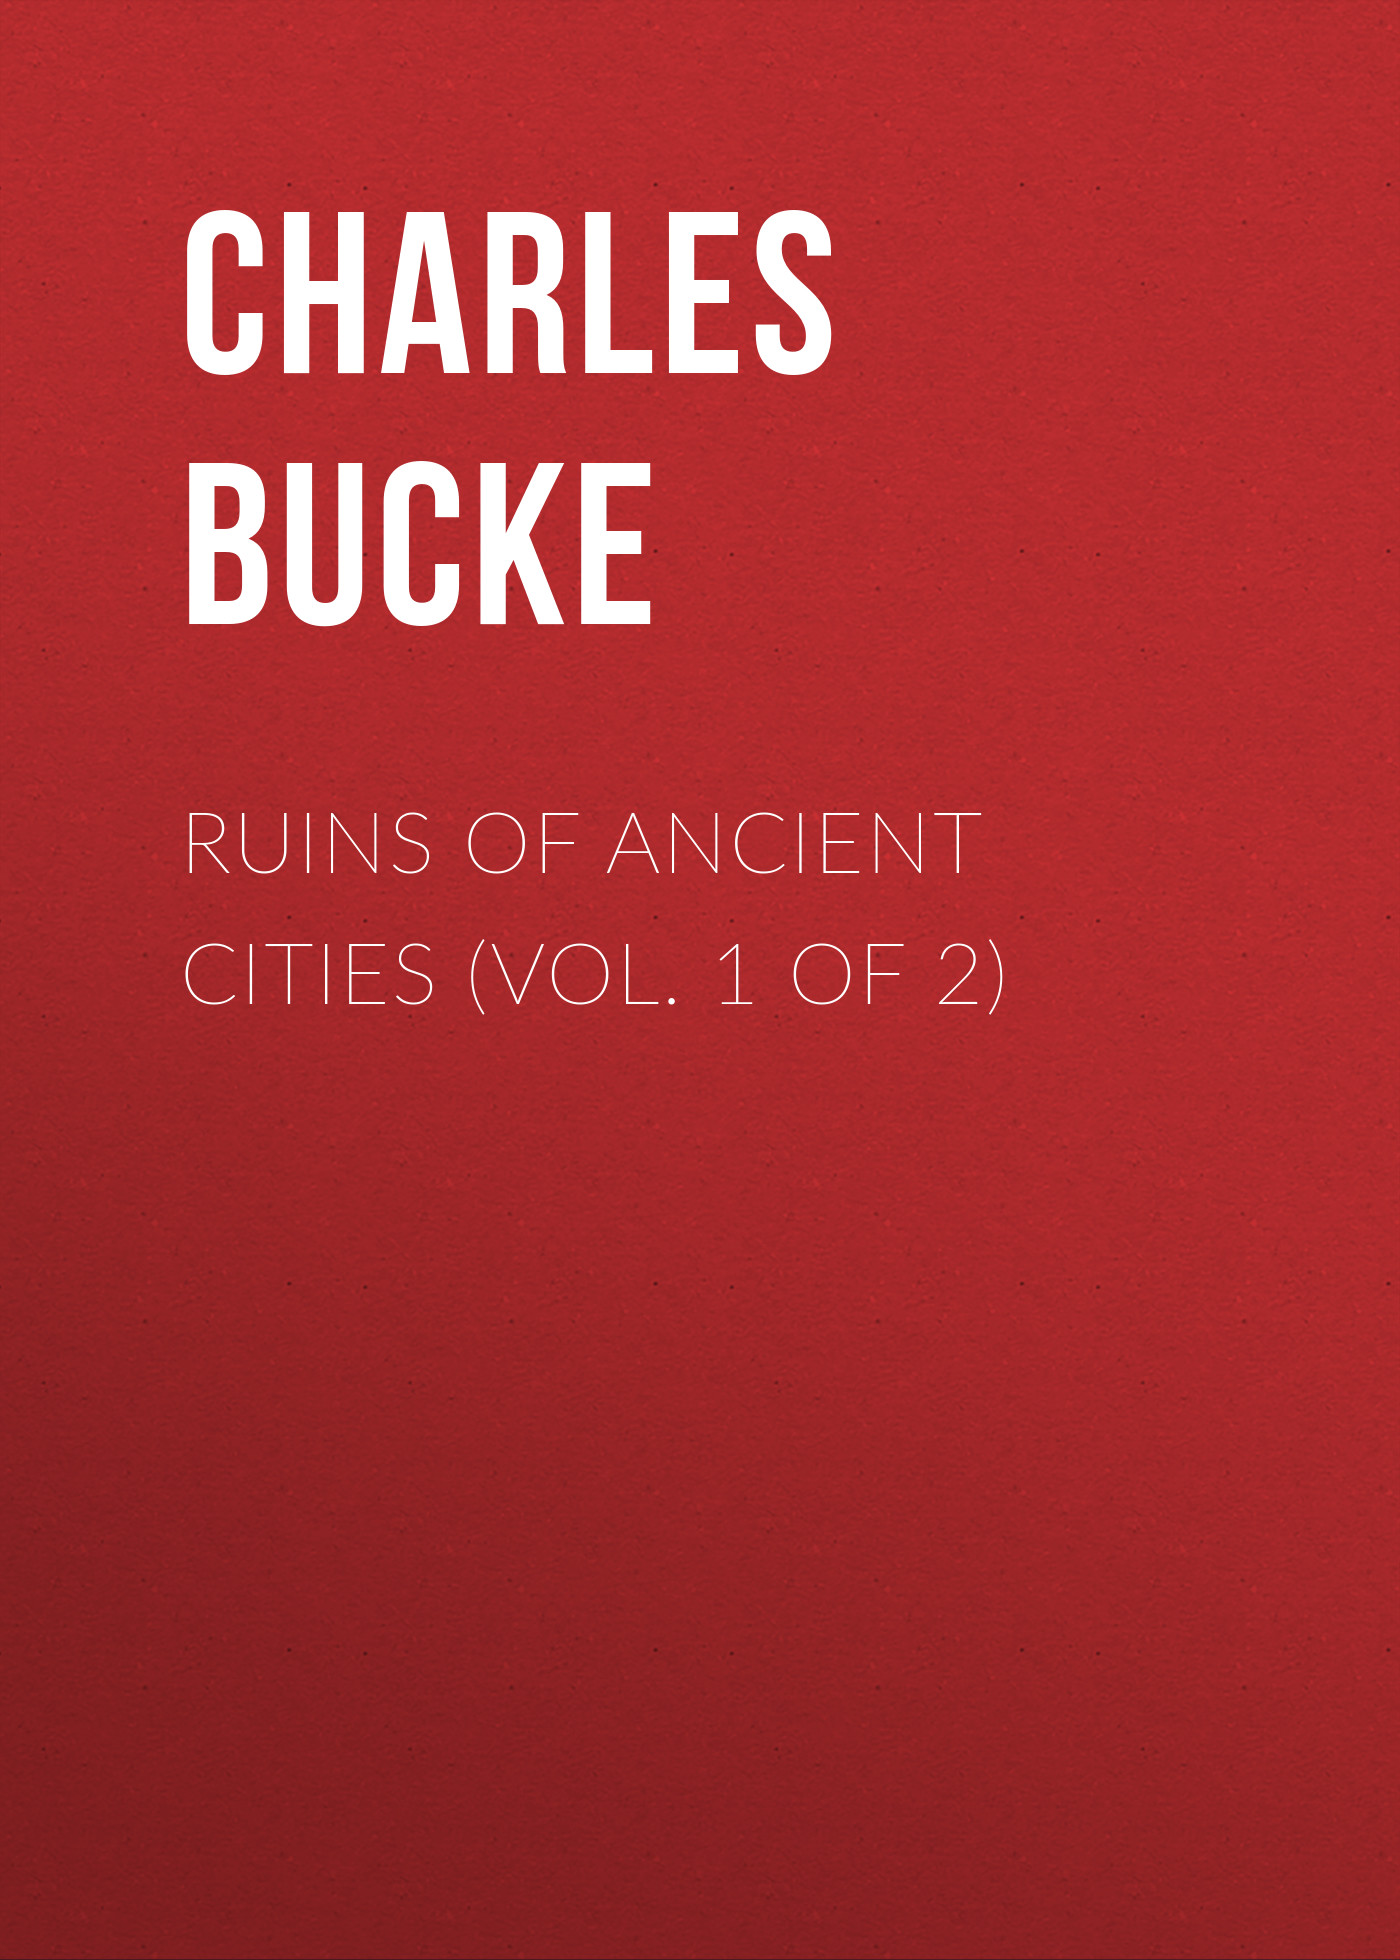 лучшая цена Bucke Charles Ruins of Ancient Cities (Vol. 1 of 2)